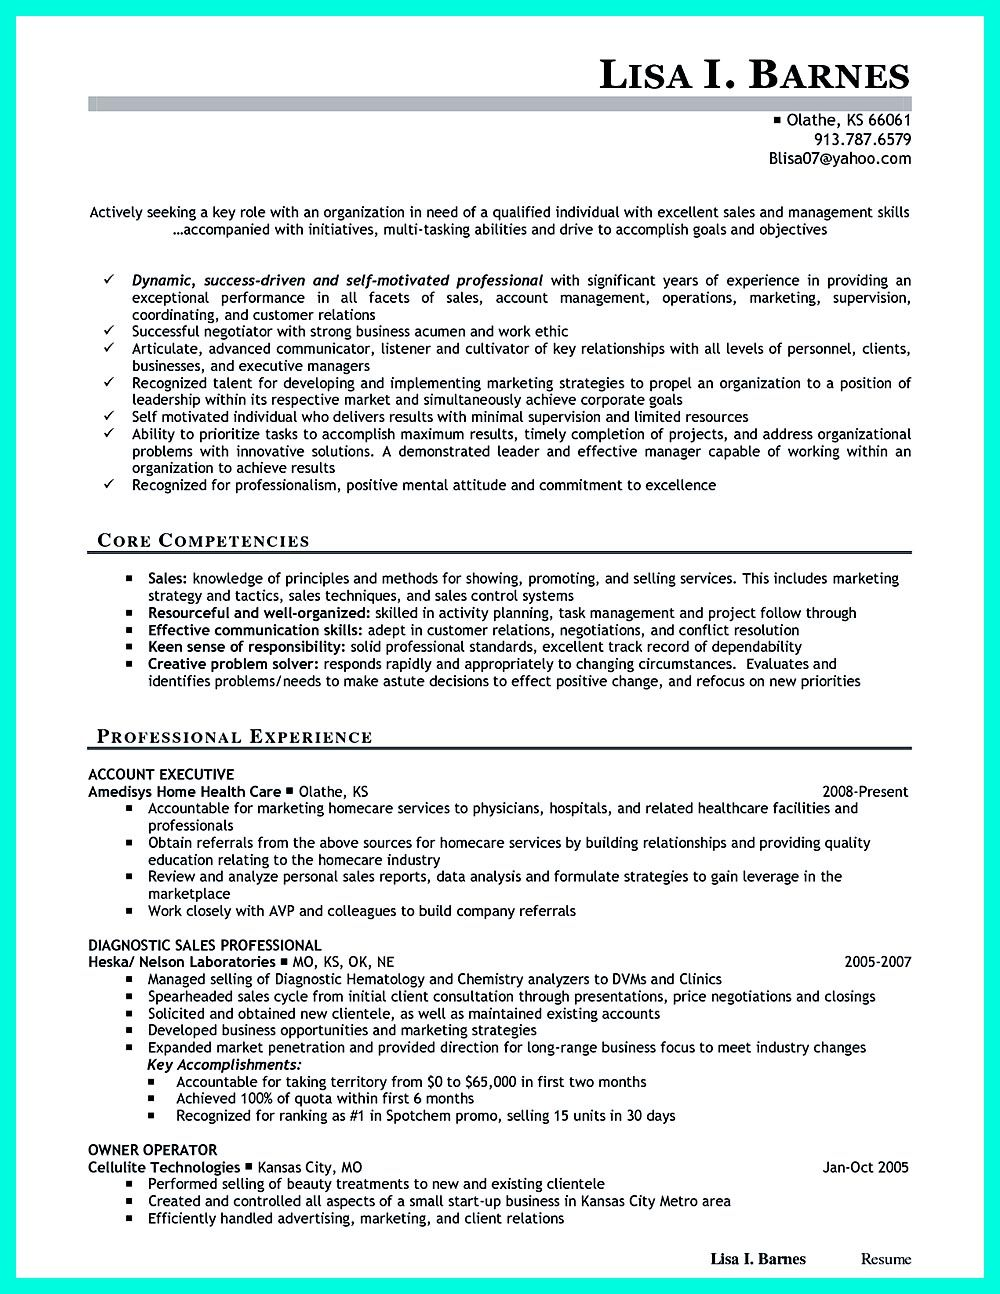 Lead Teller Resume Awesome It Is Necessary To Make Well Organized College Golf Resumea Well .